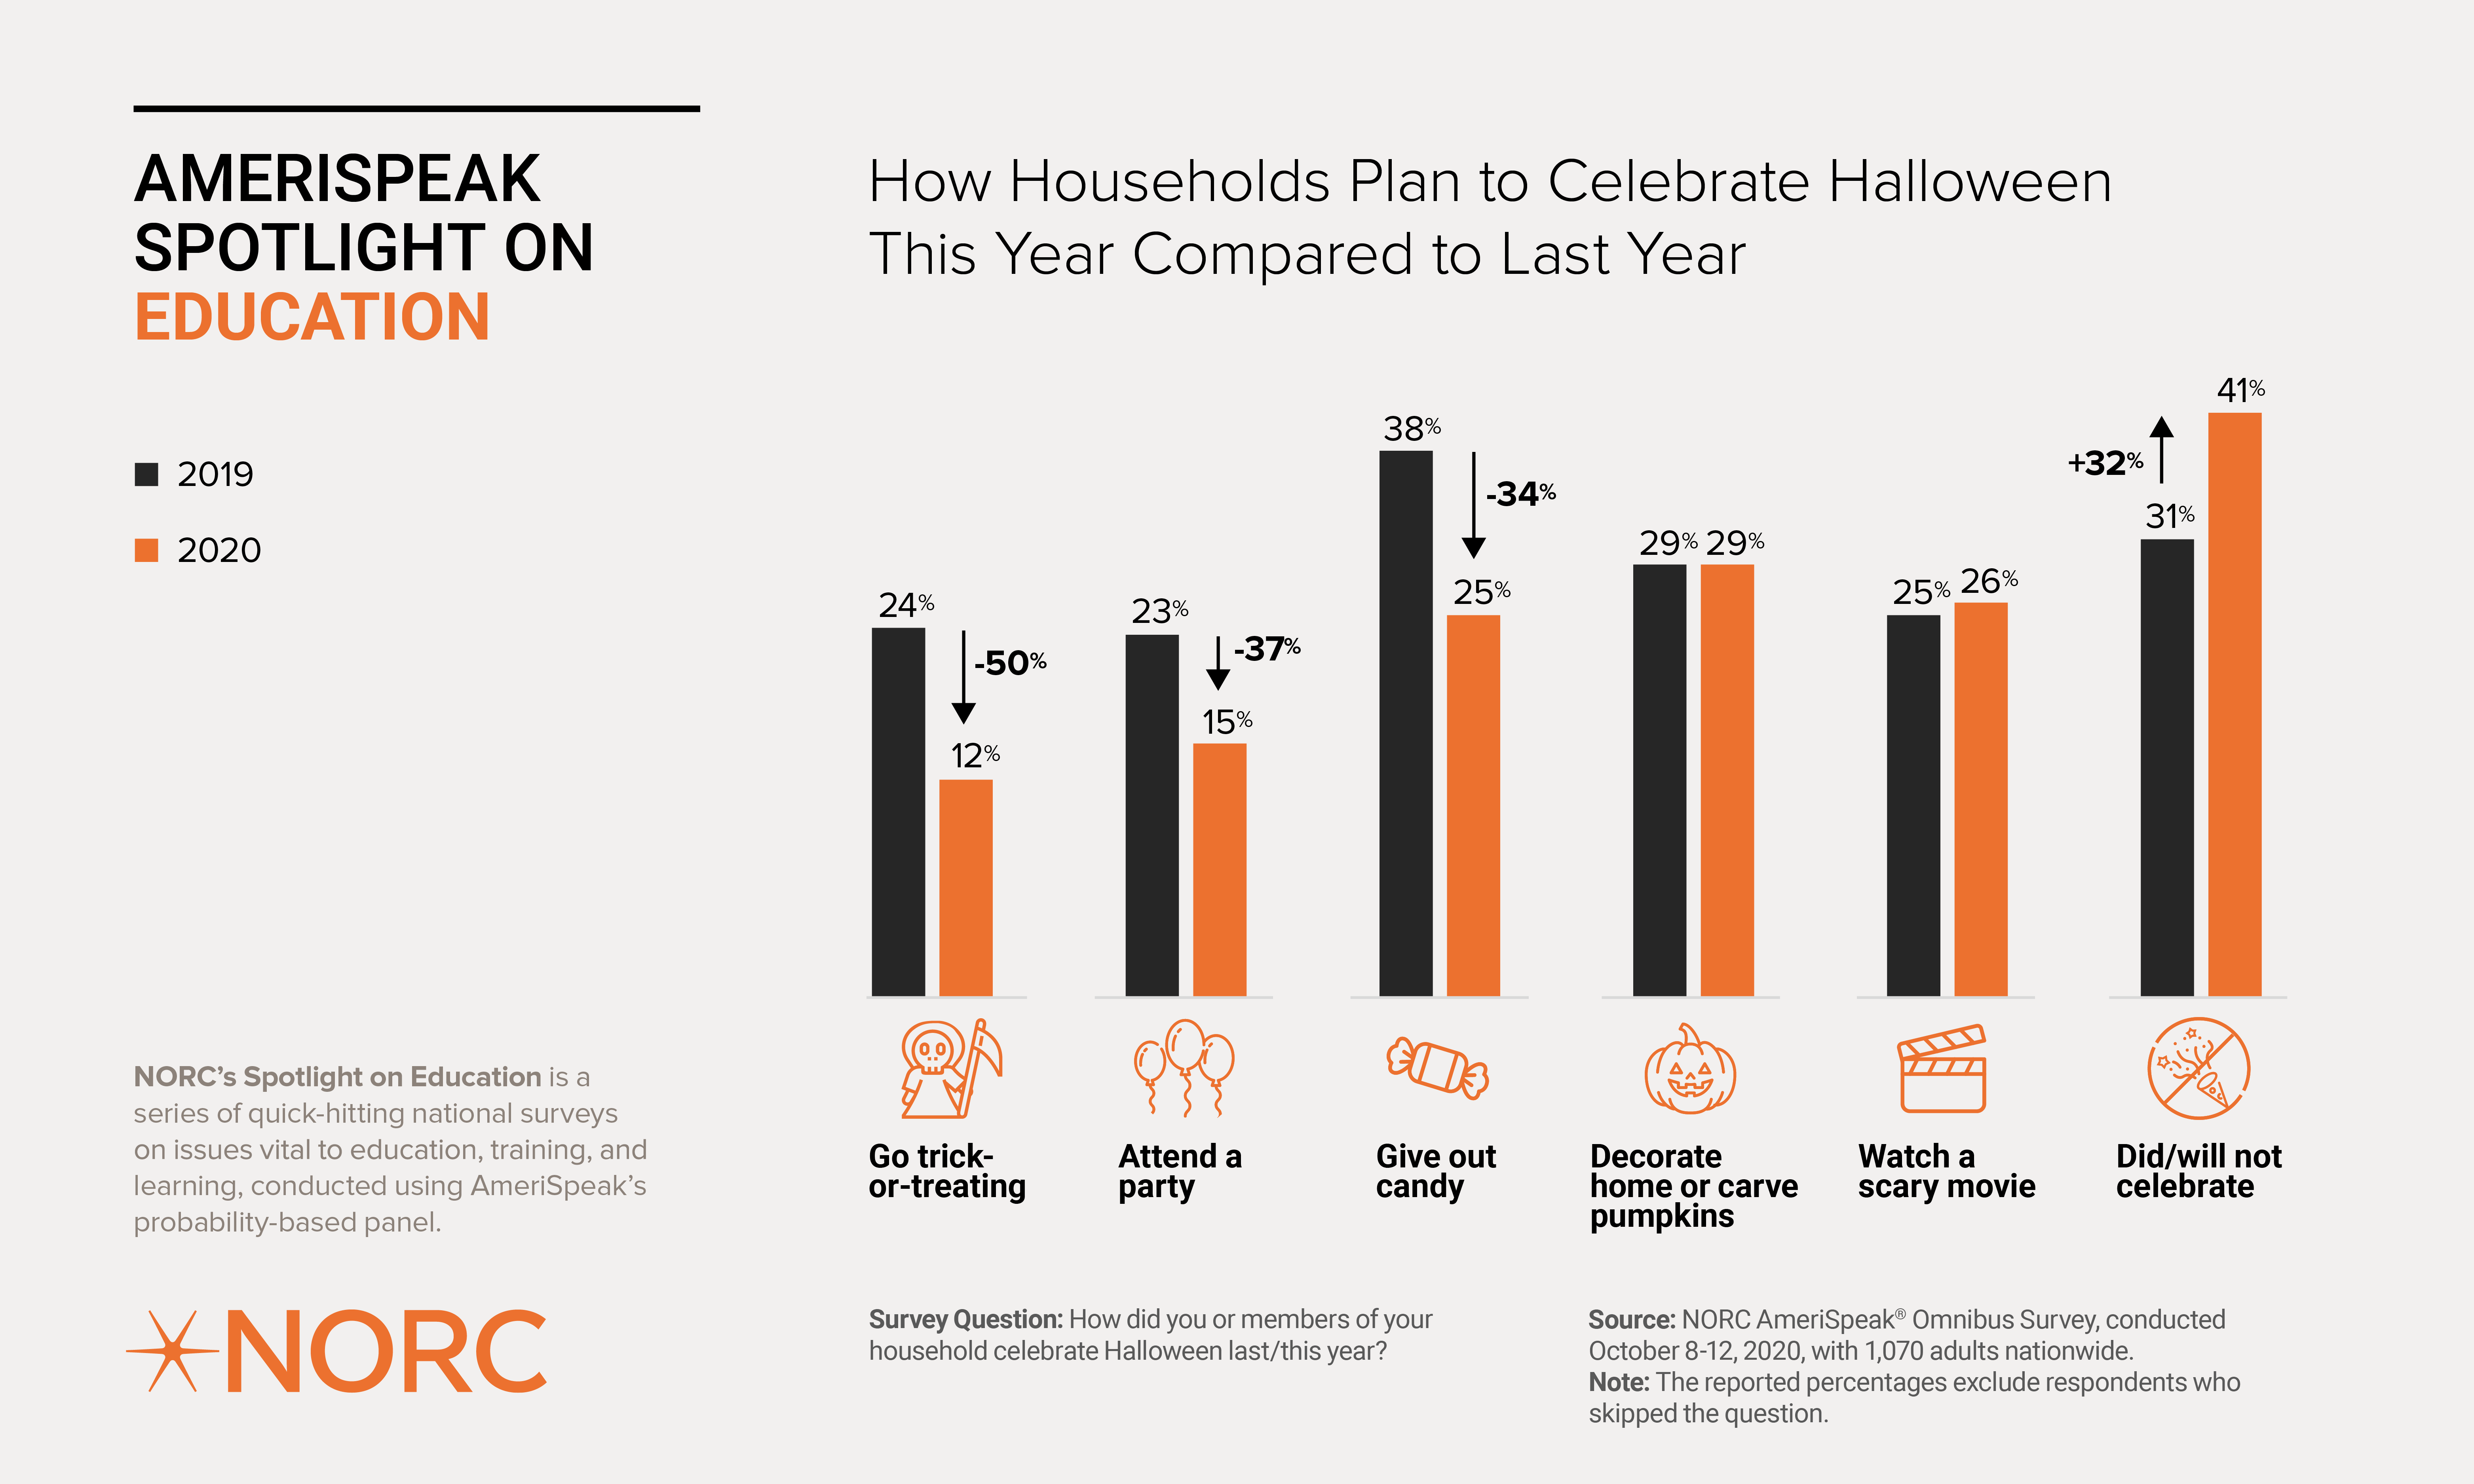 How Households Plan to Celebrate Halloween This Year Compared to Last Year